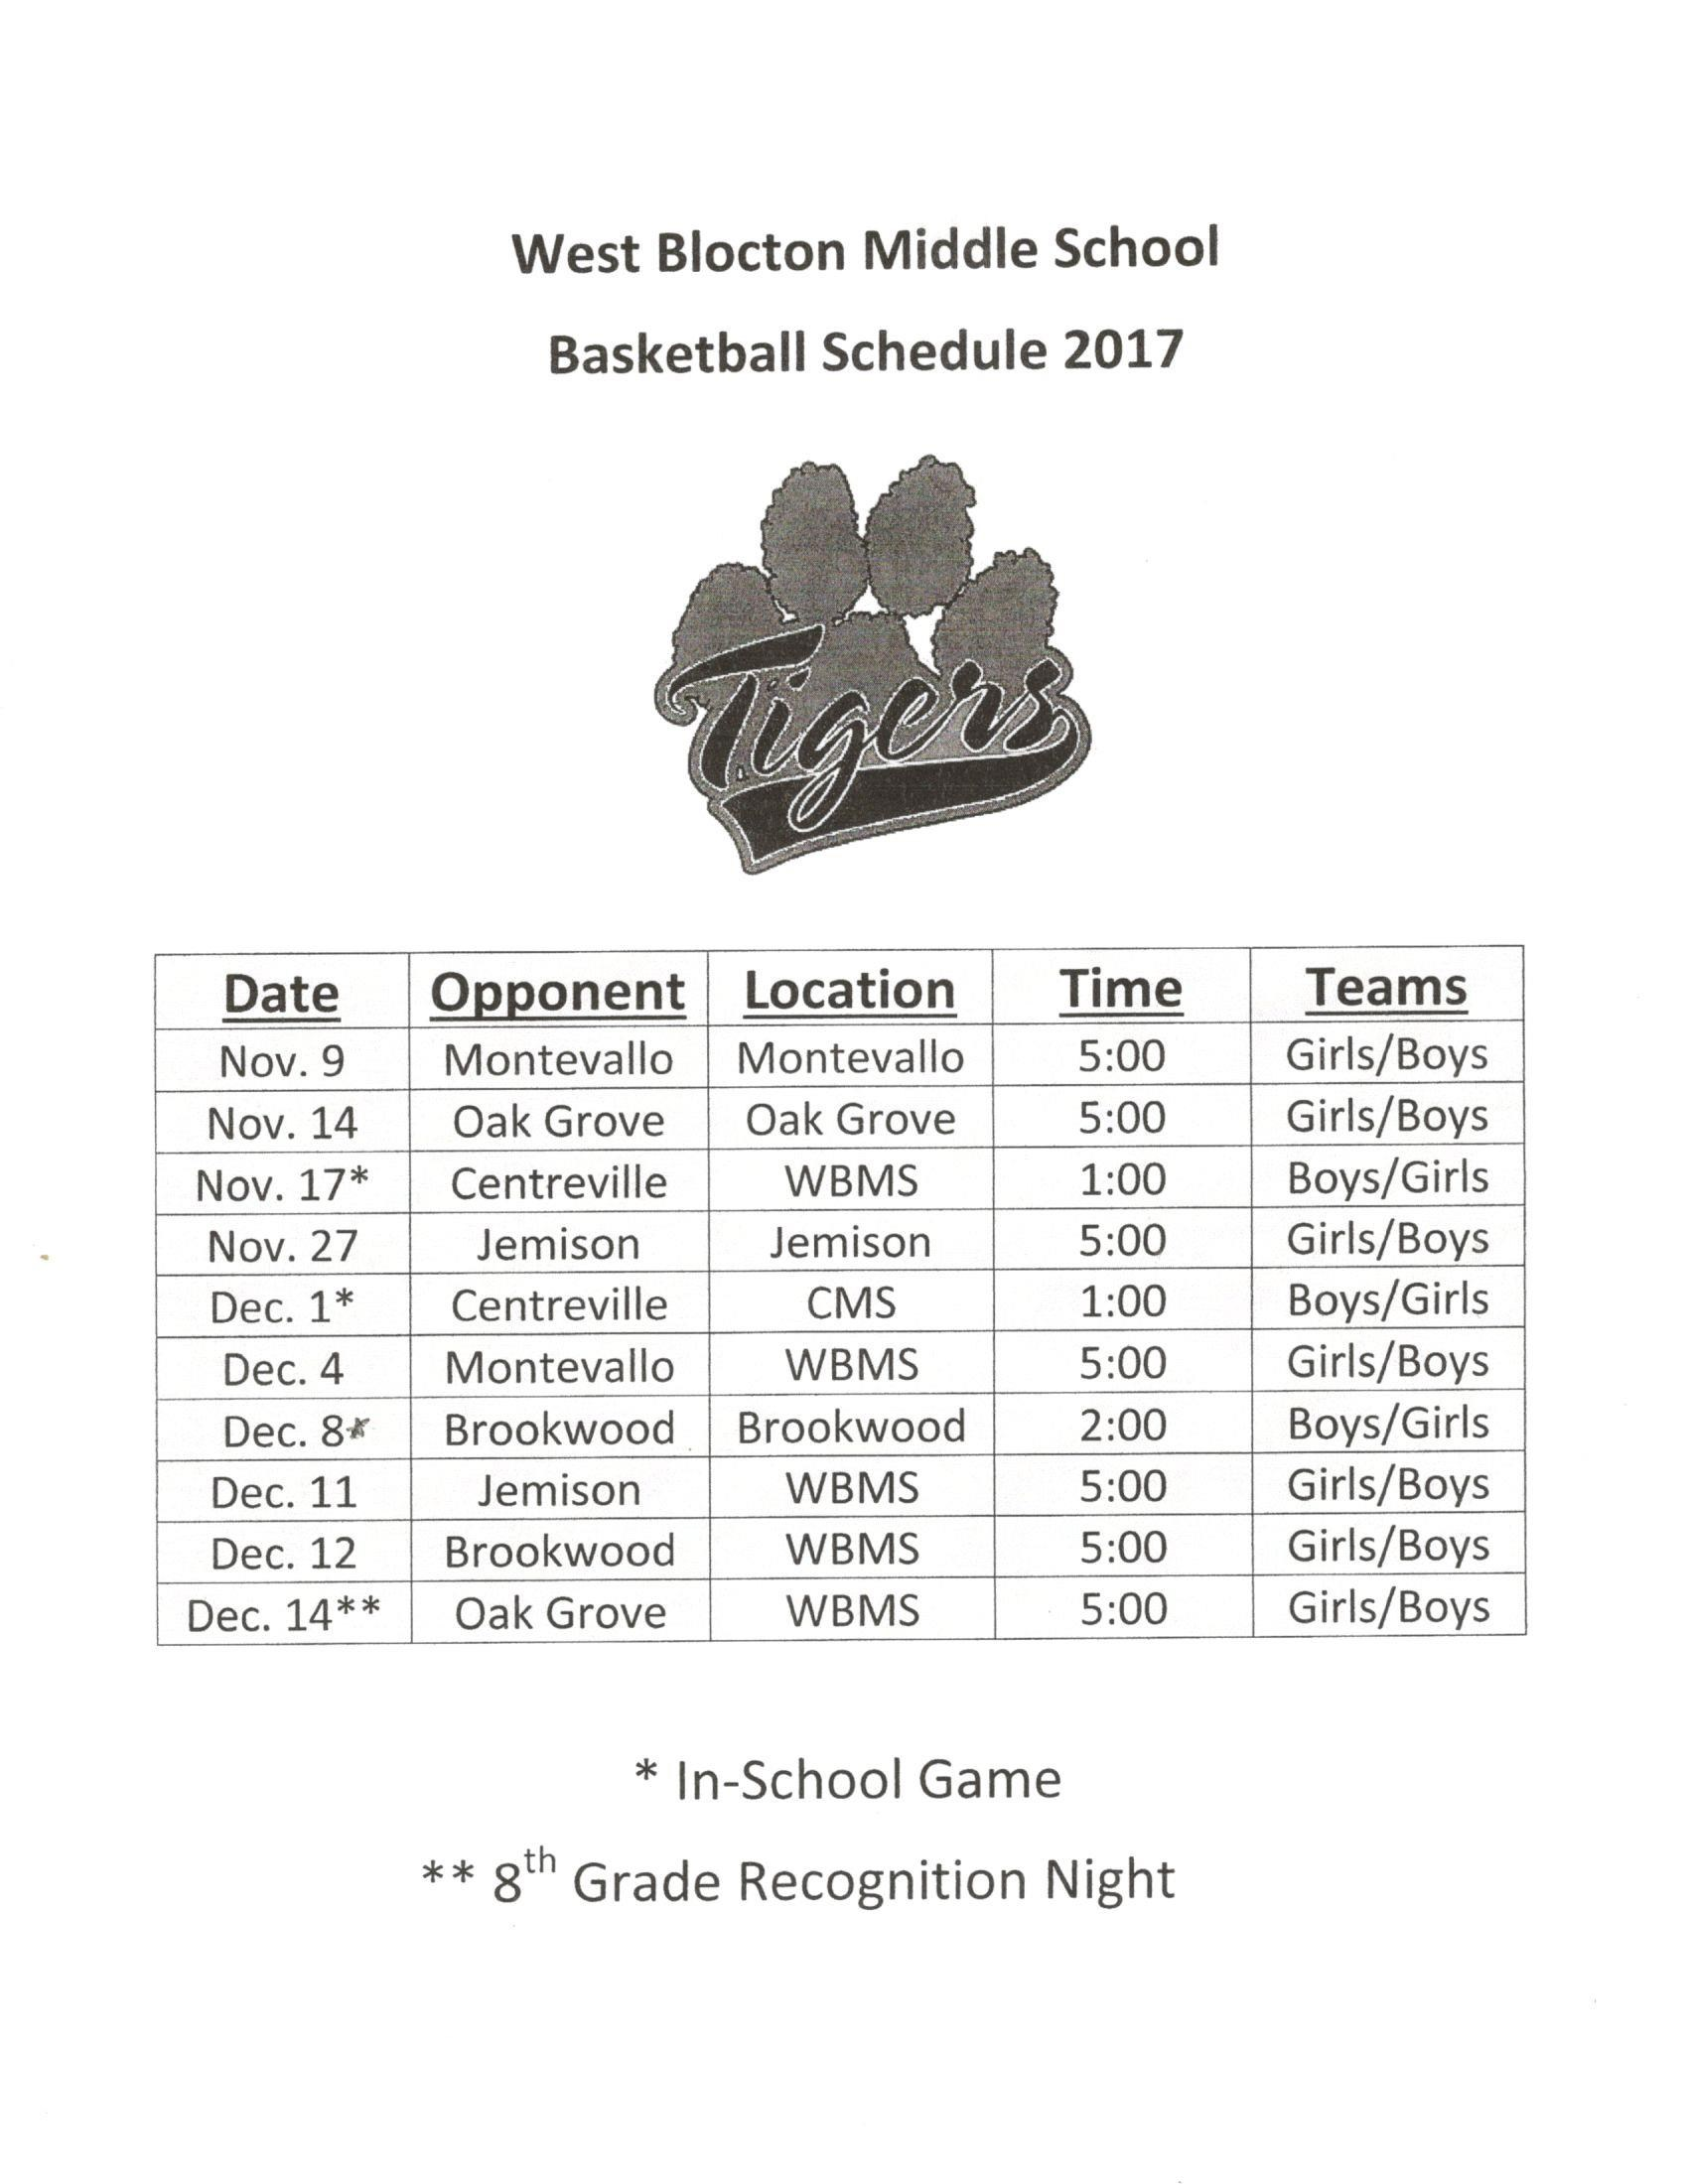 2017-18 WBMS Boys Basketball Schedule